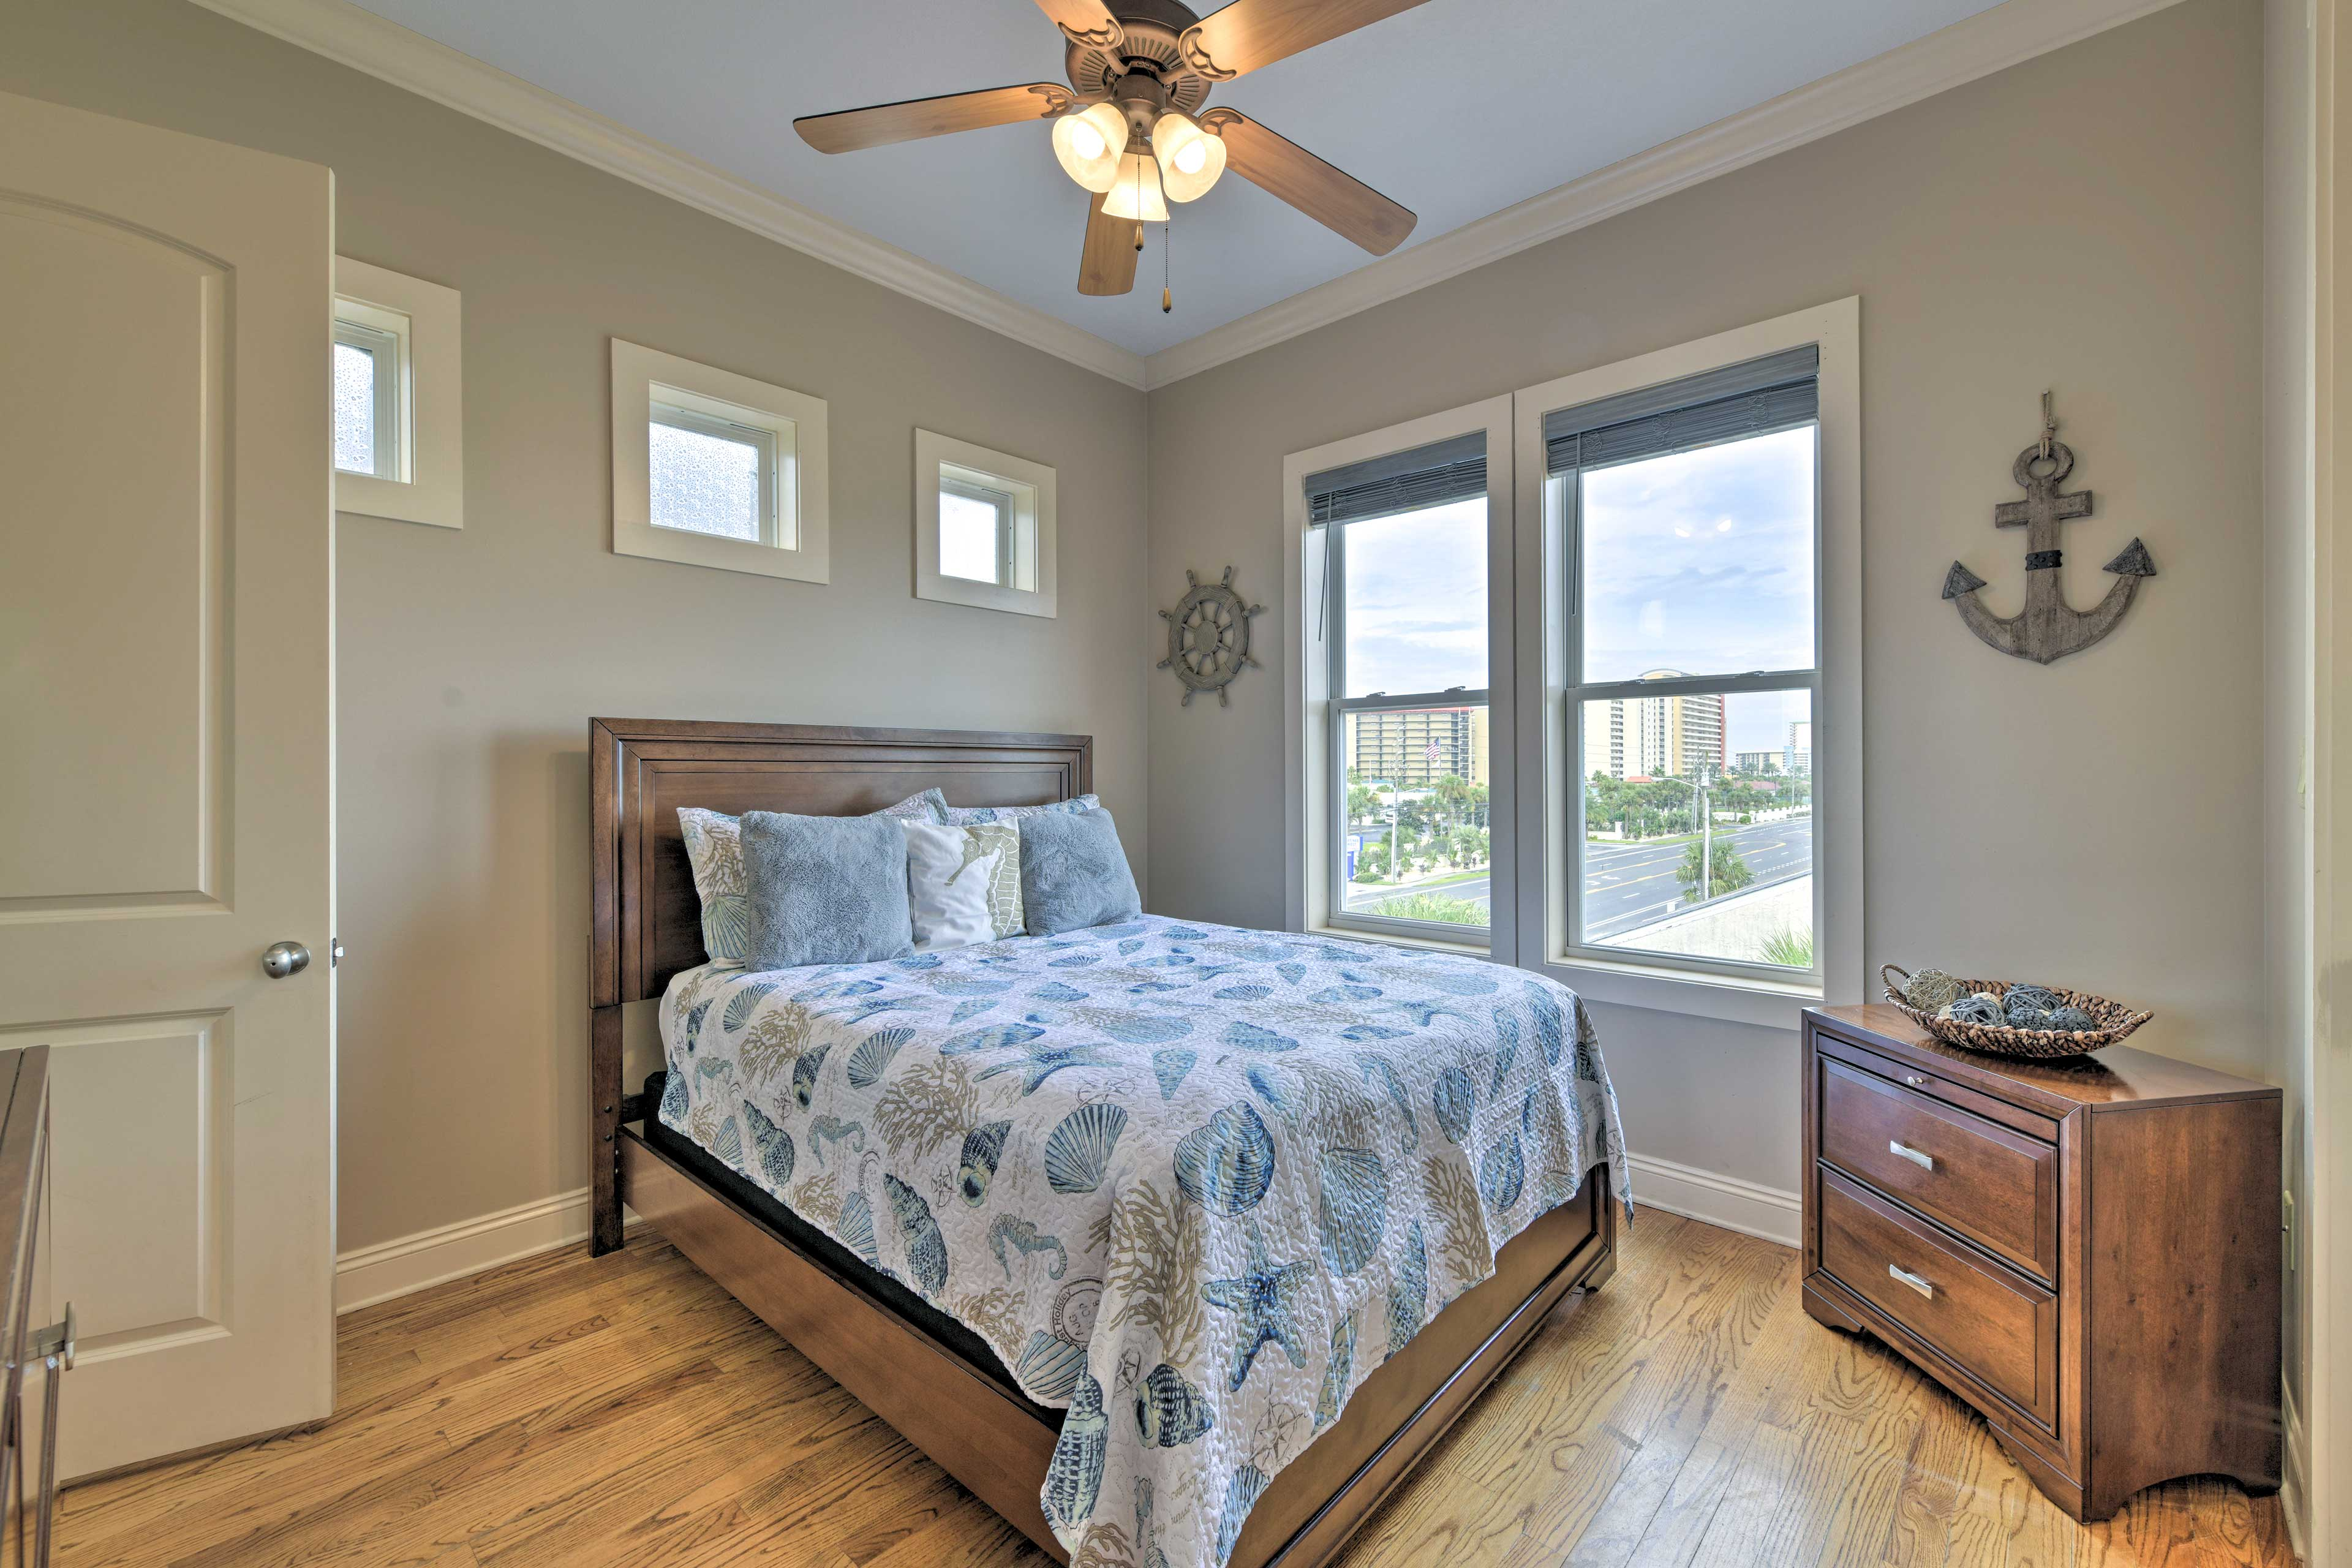 This next bedroom also includes a queen bed.